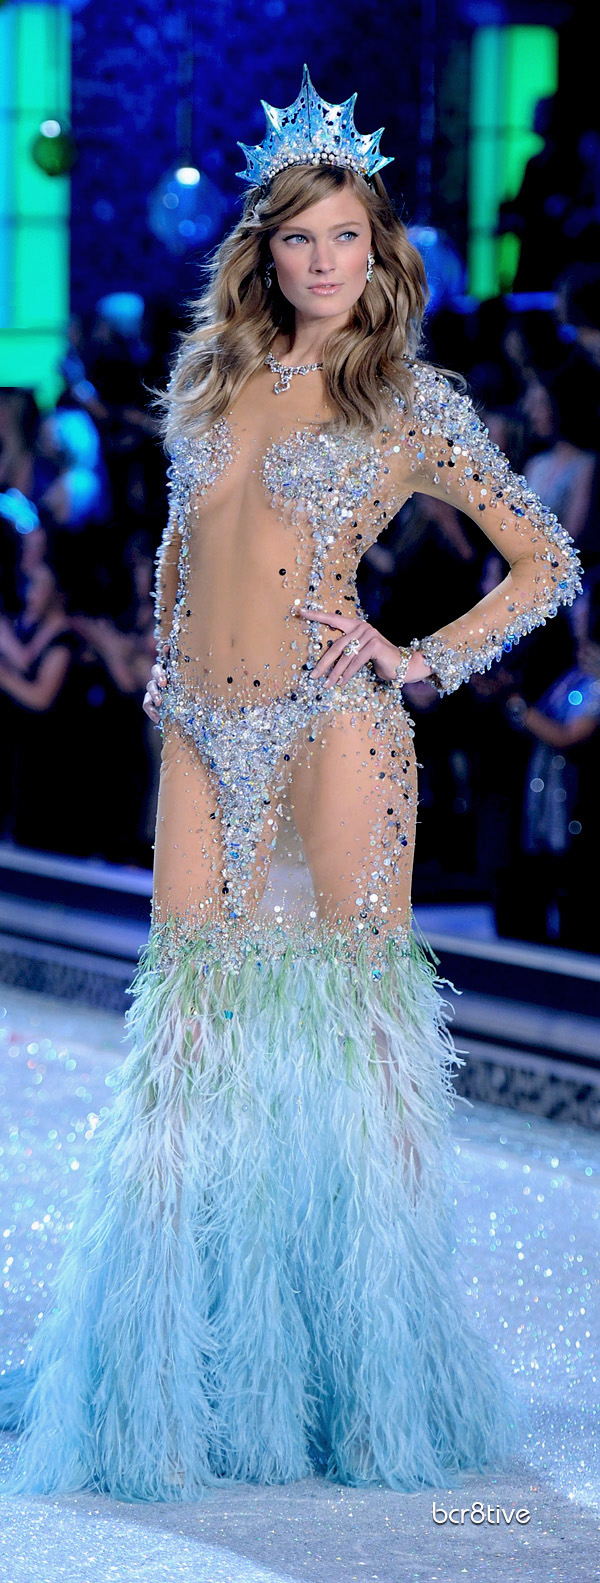 Victorias secret fashion show 2011 - Victoria Secret Fashion Show 2011 New York Constance Jablonski